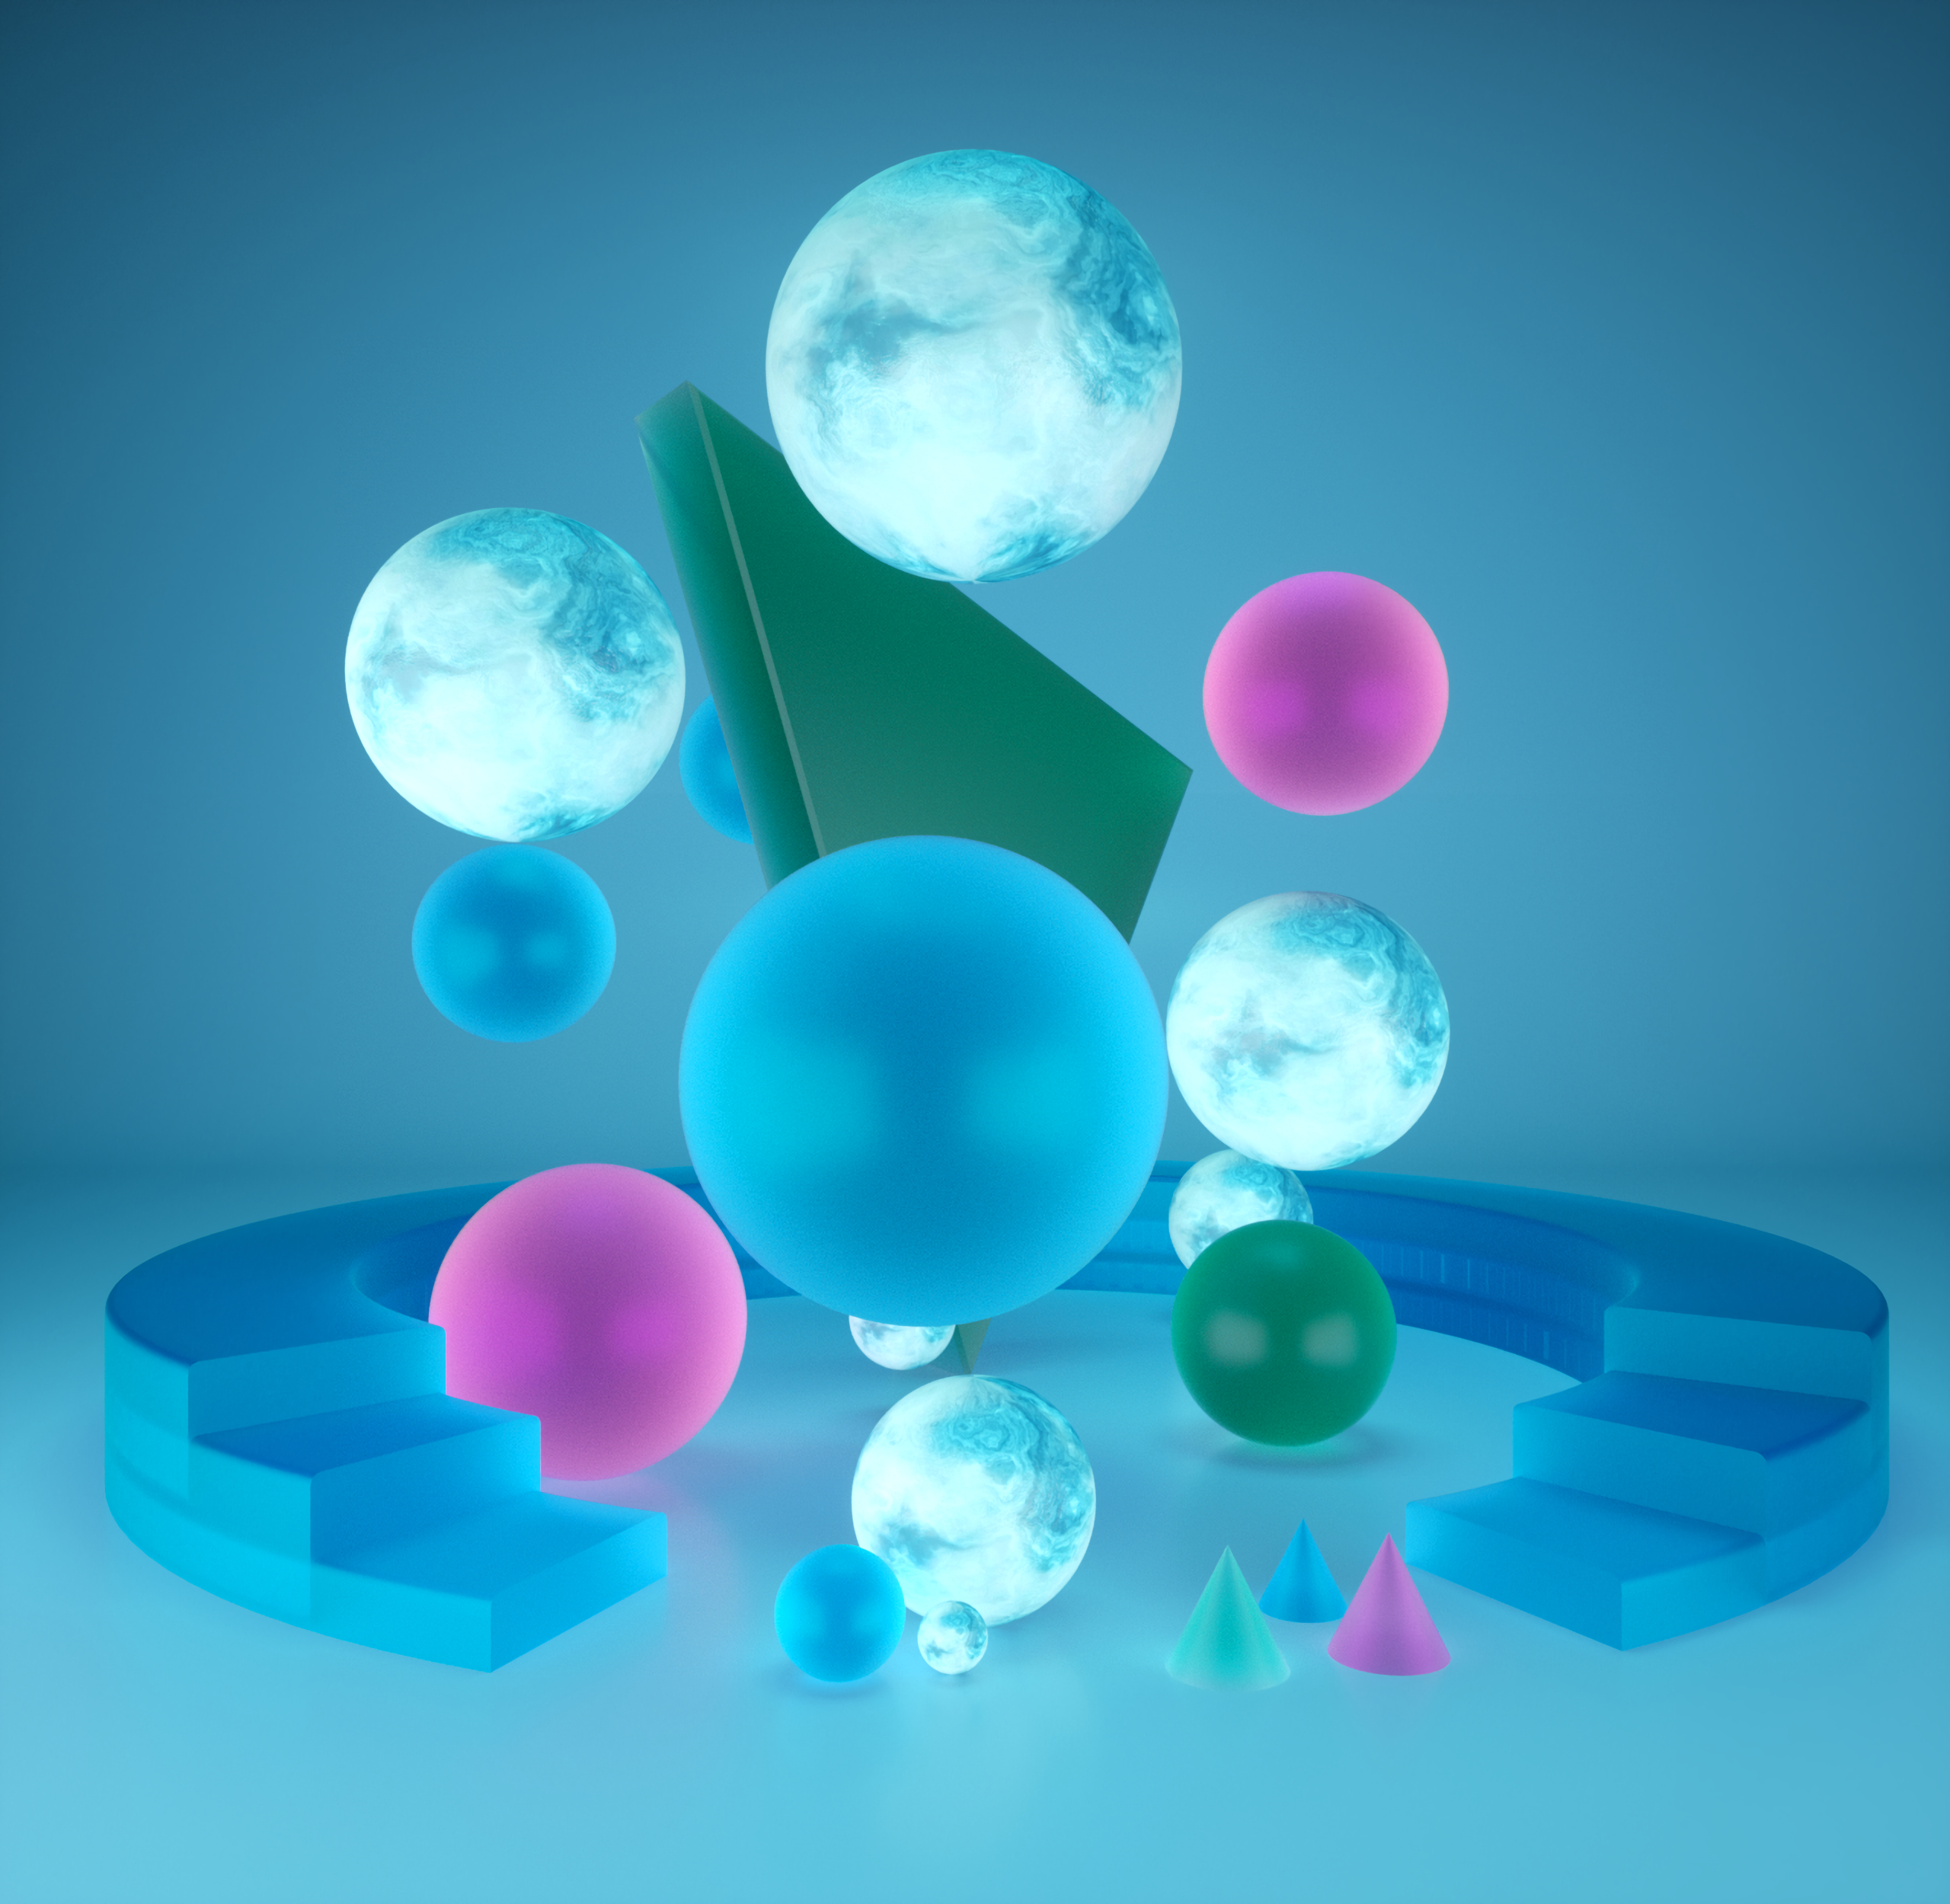 144619 Screensavers and Wallpapers Balls for phone. Download 3D, Balls, Shapes, Shape, Geometric, Sphere, Spheres pictures for free